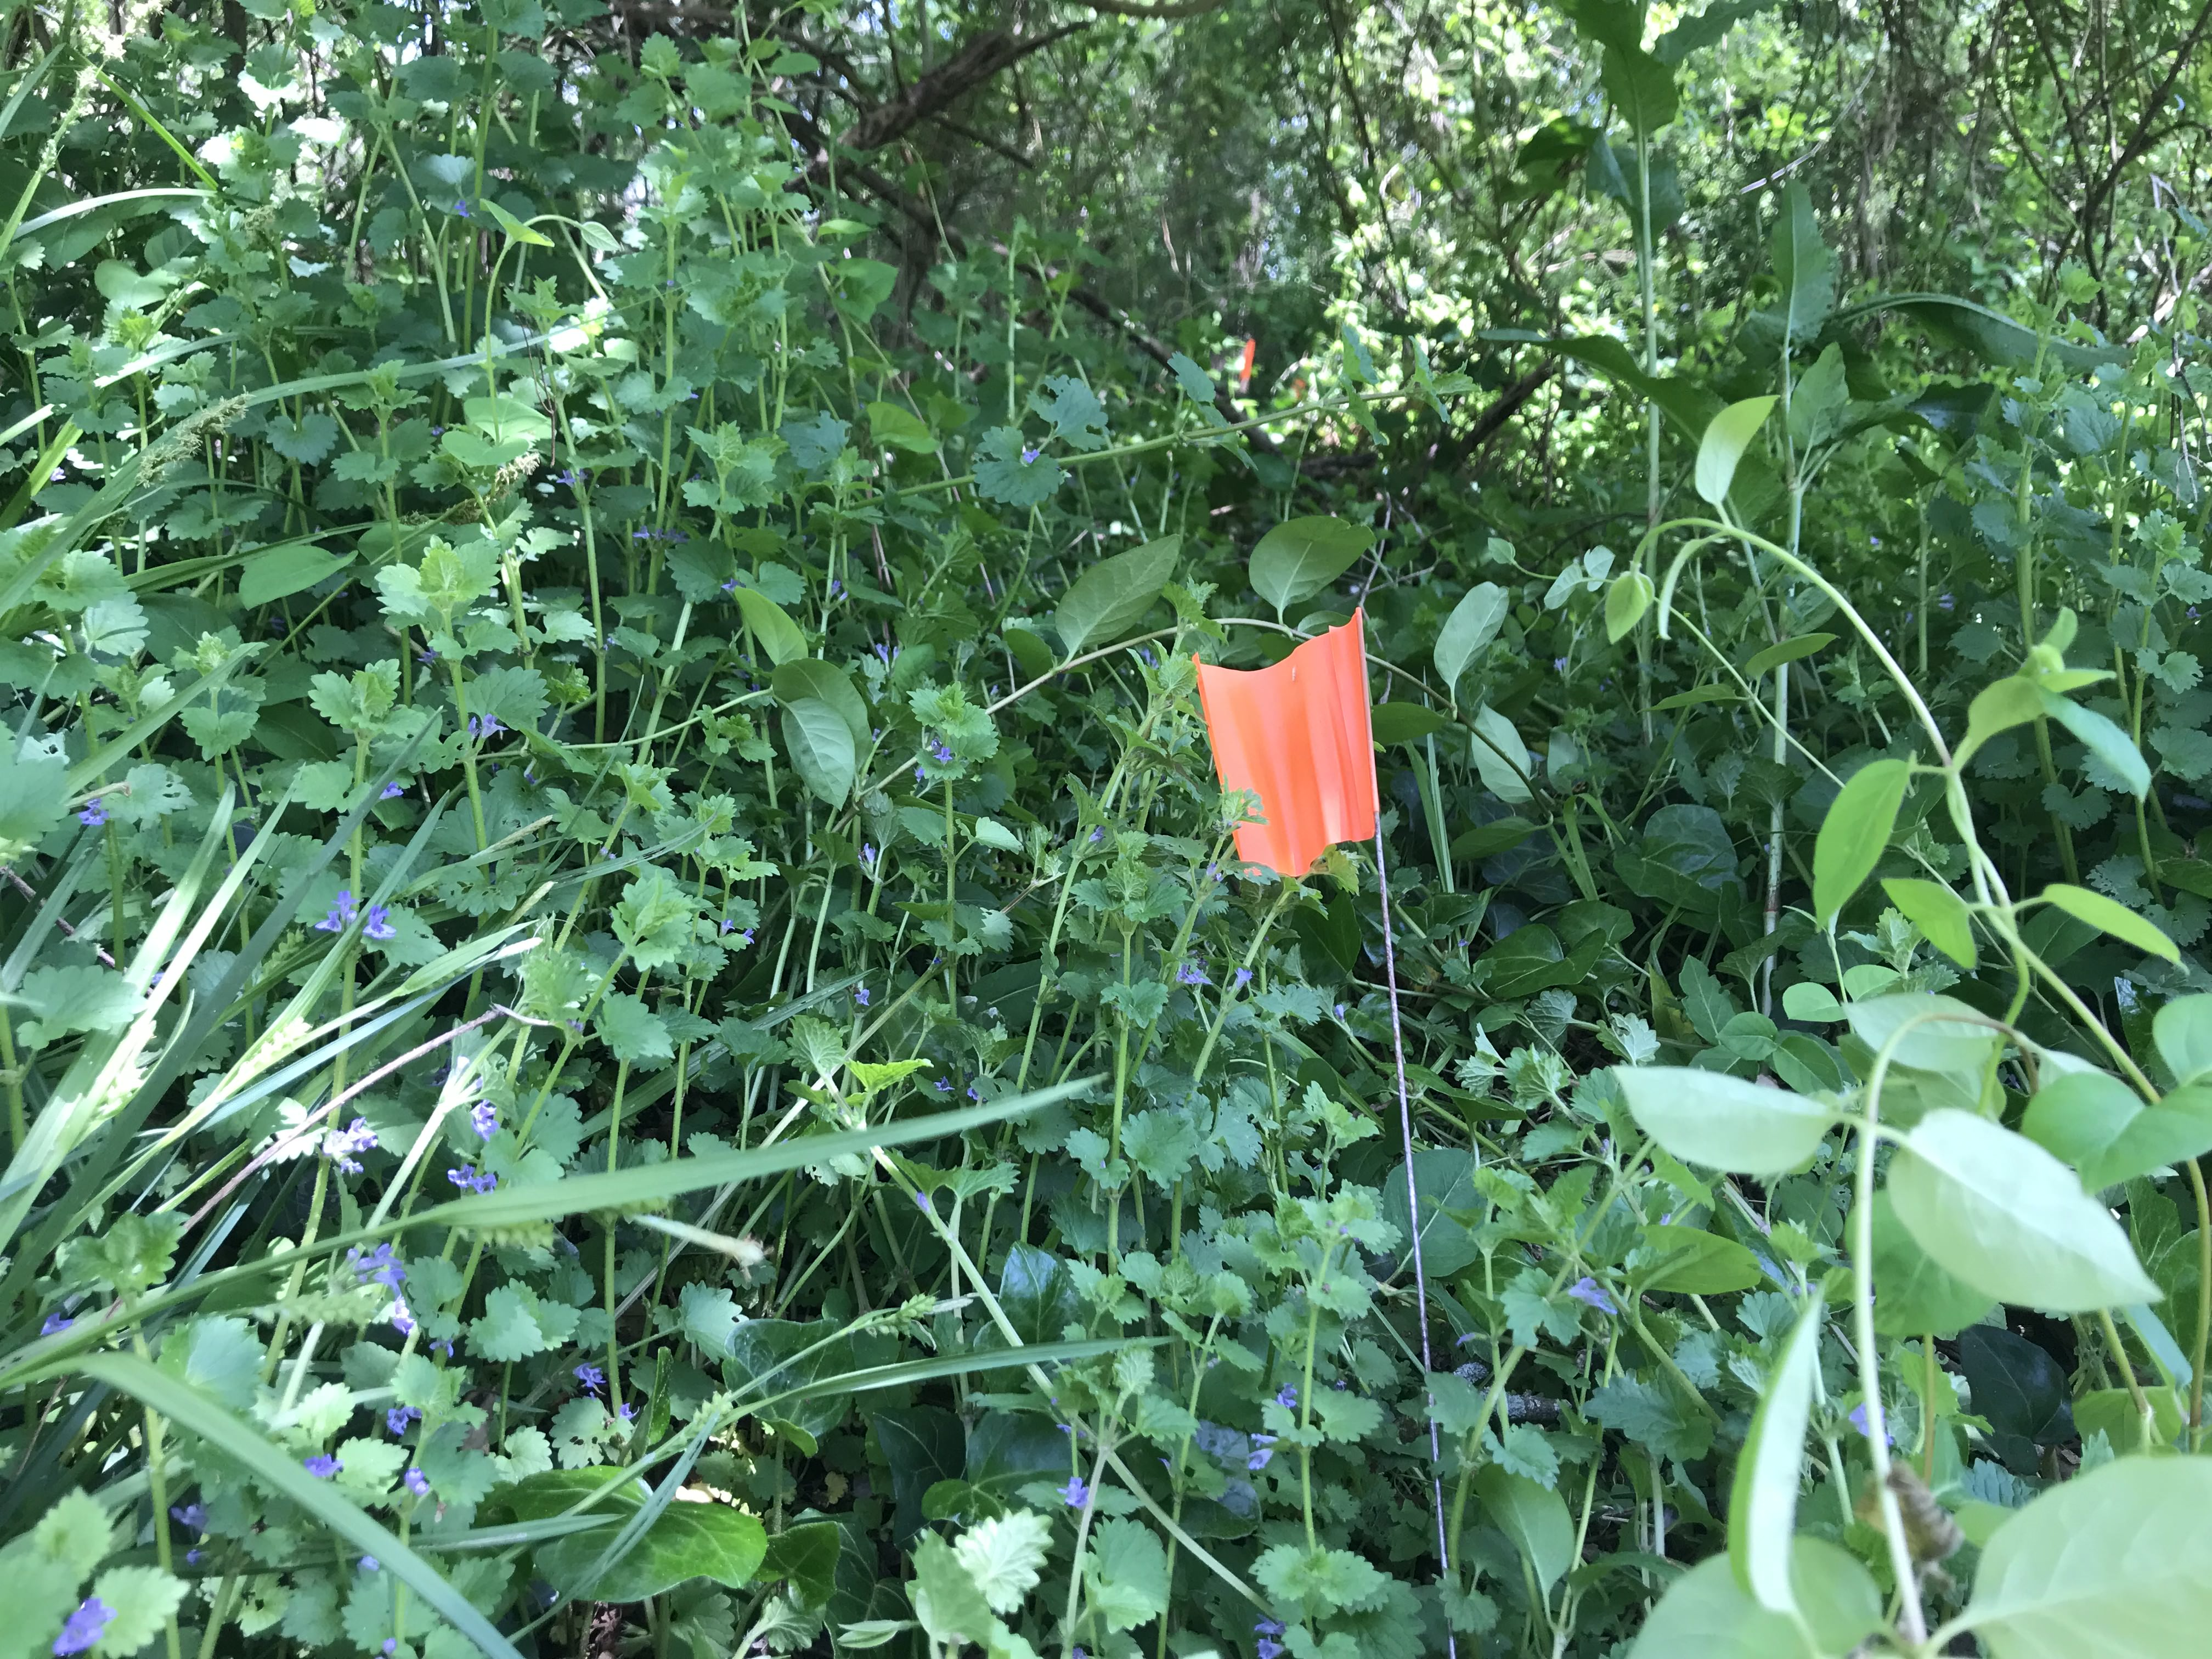 Image of an orange flag staked into ground.